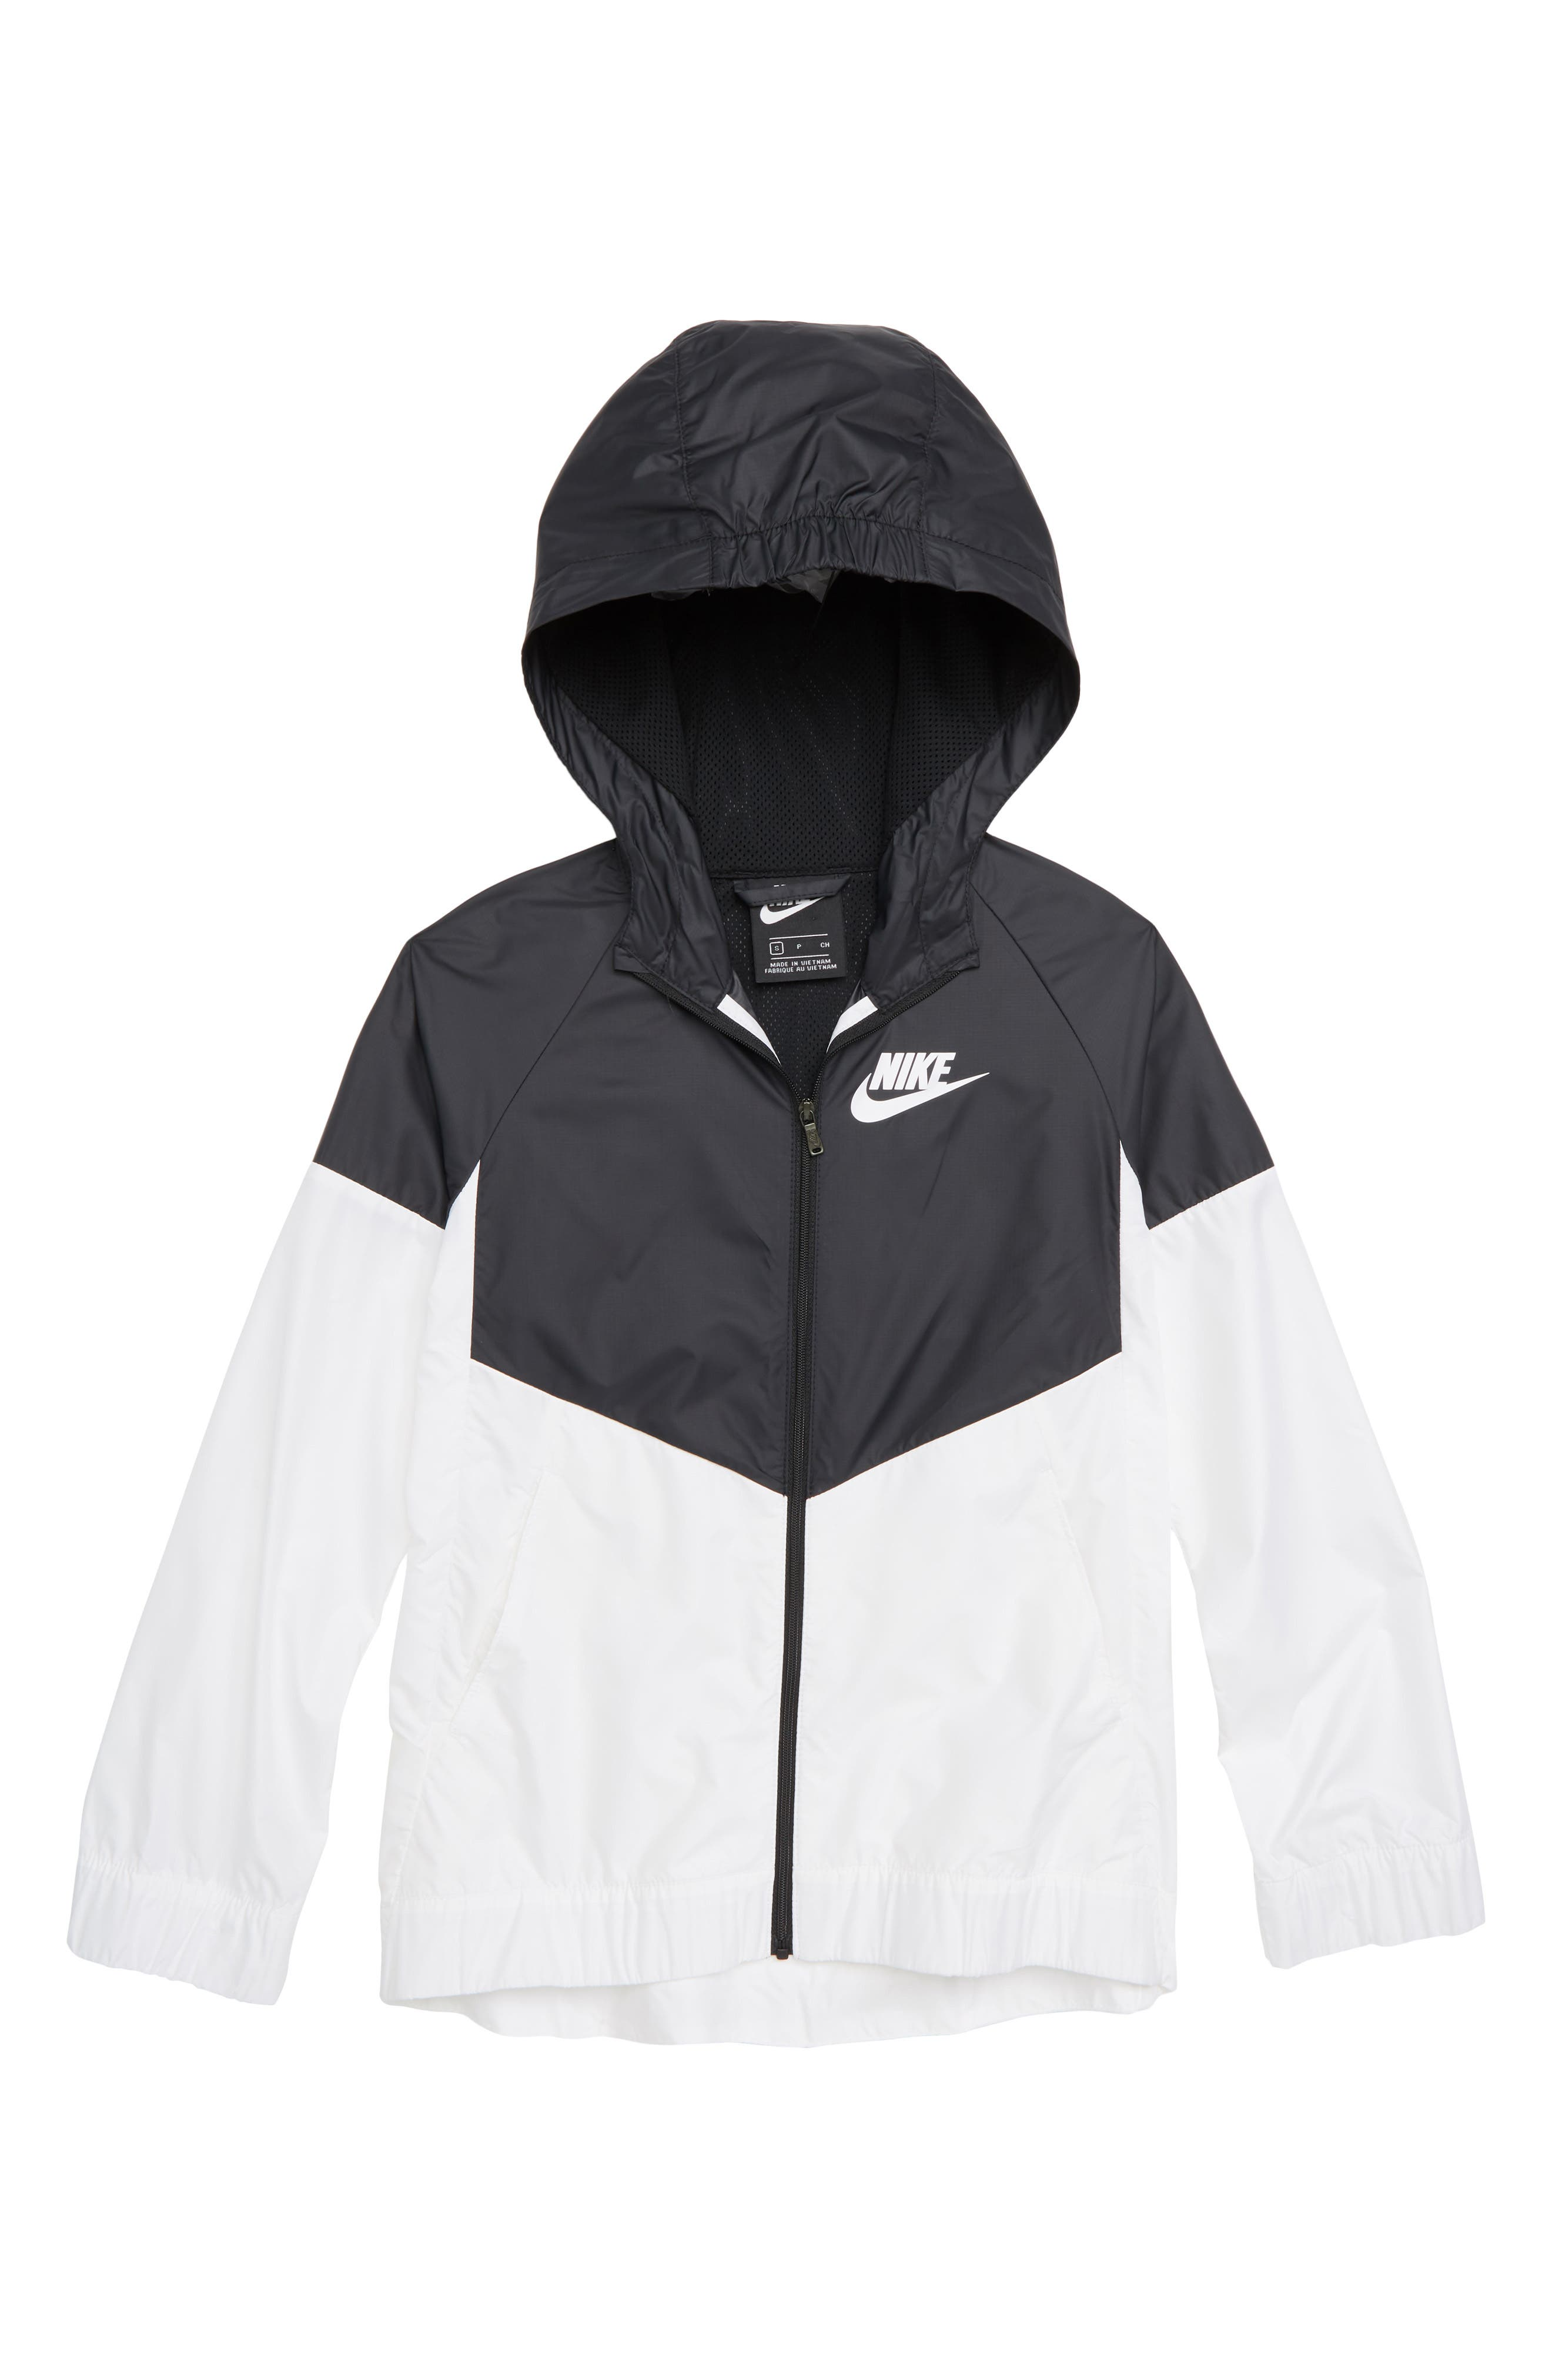 Sportswear Windrunner Jacket,                             Main thumbnail 1, color,                             013